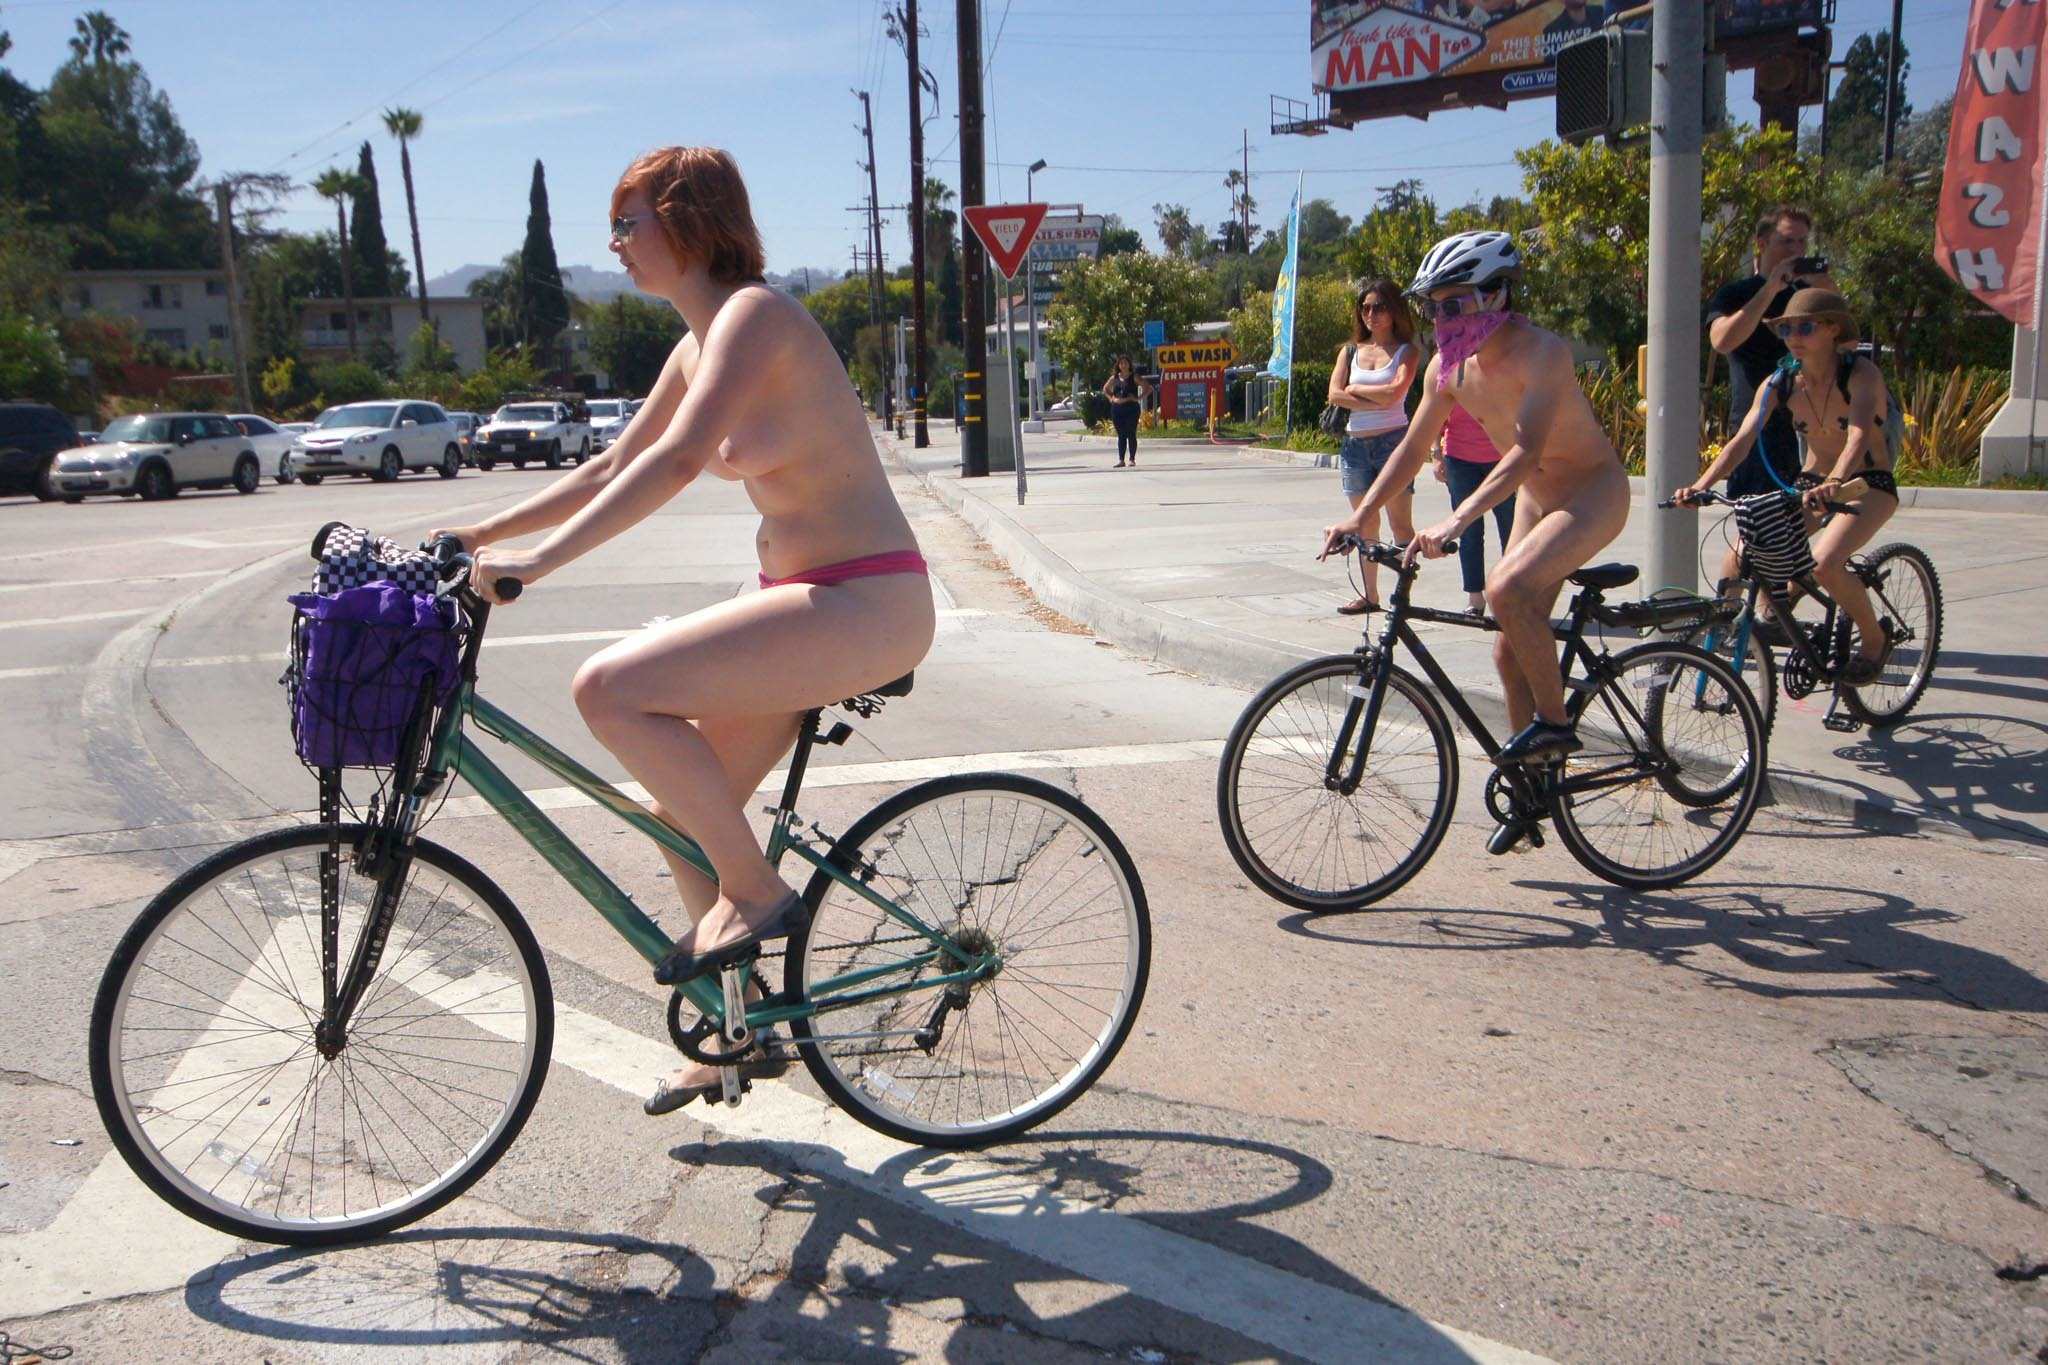 World Naked Bike Ride Los Angeles 2014 photos